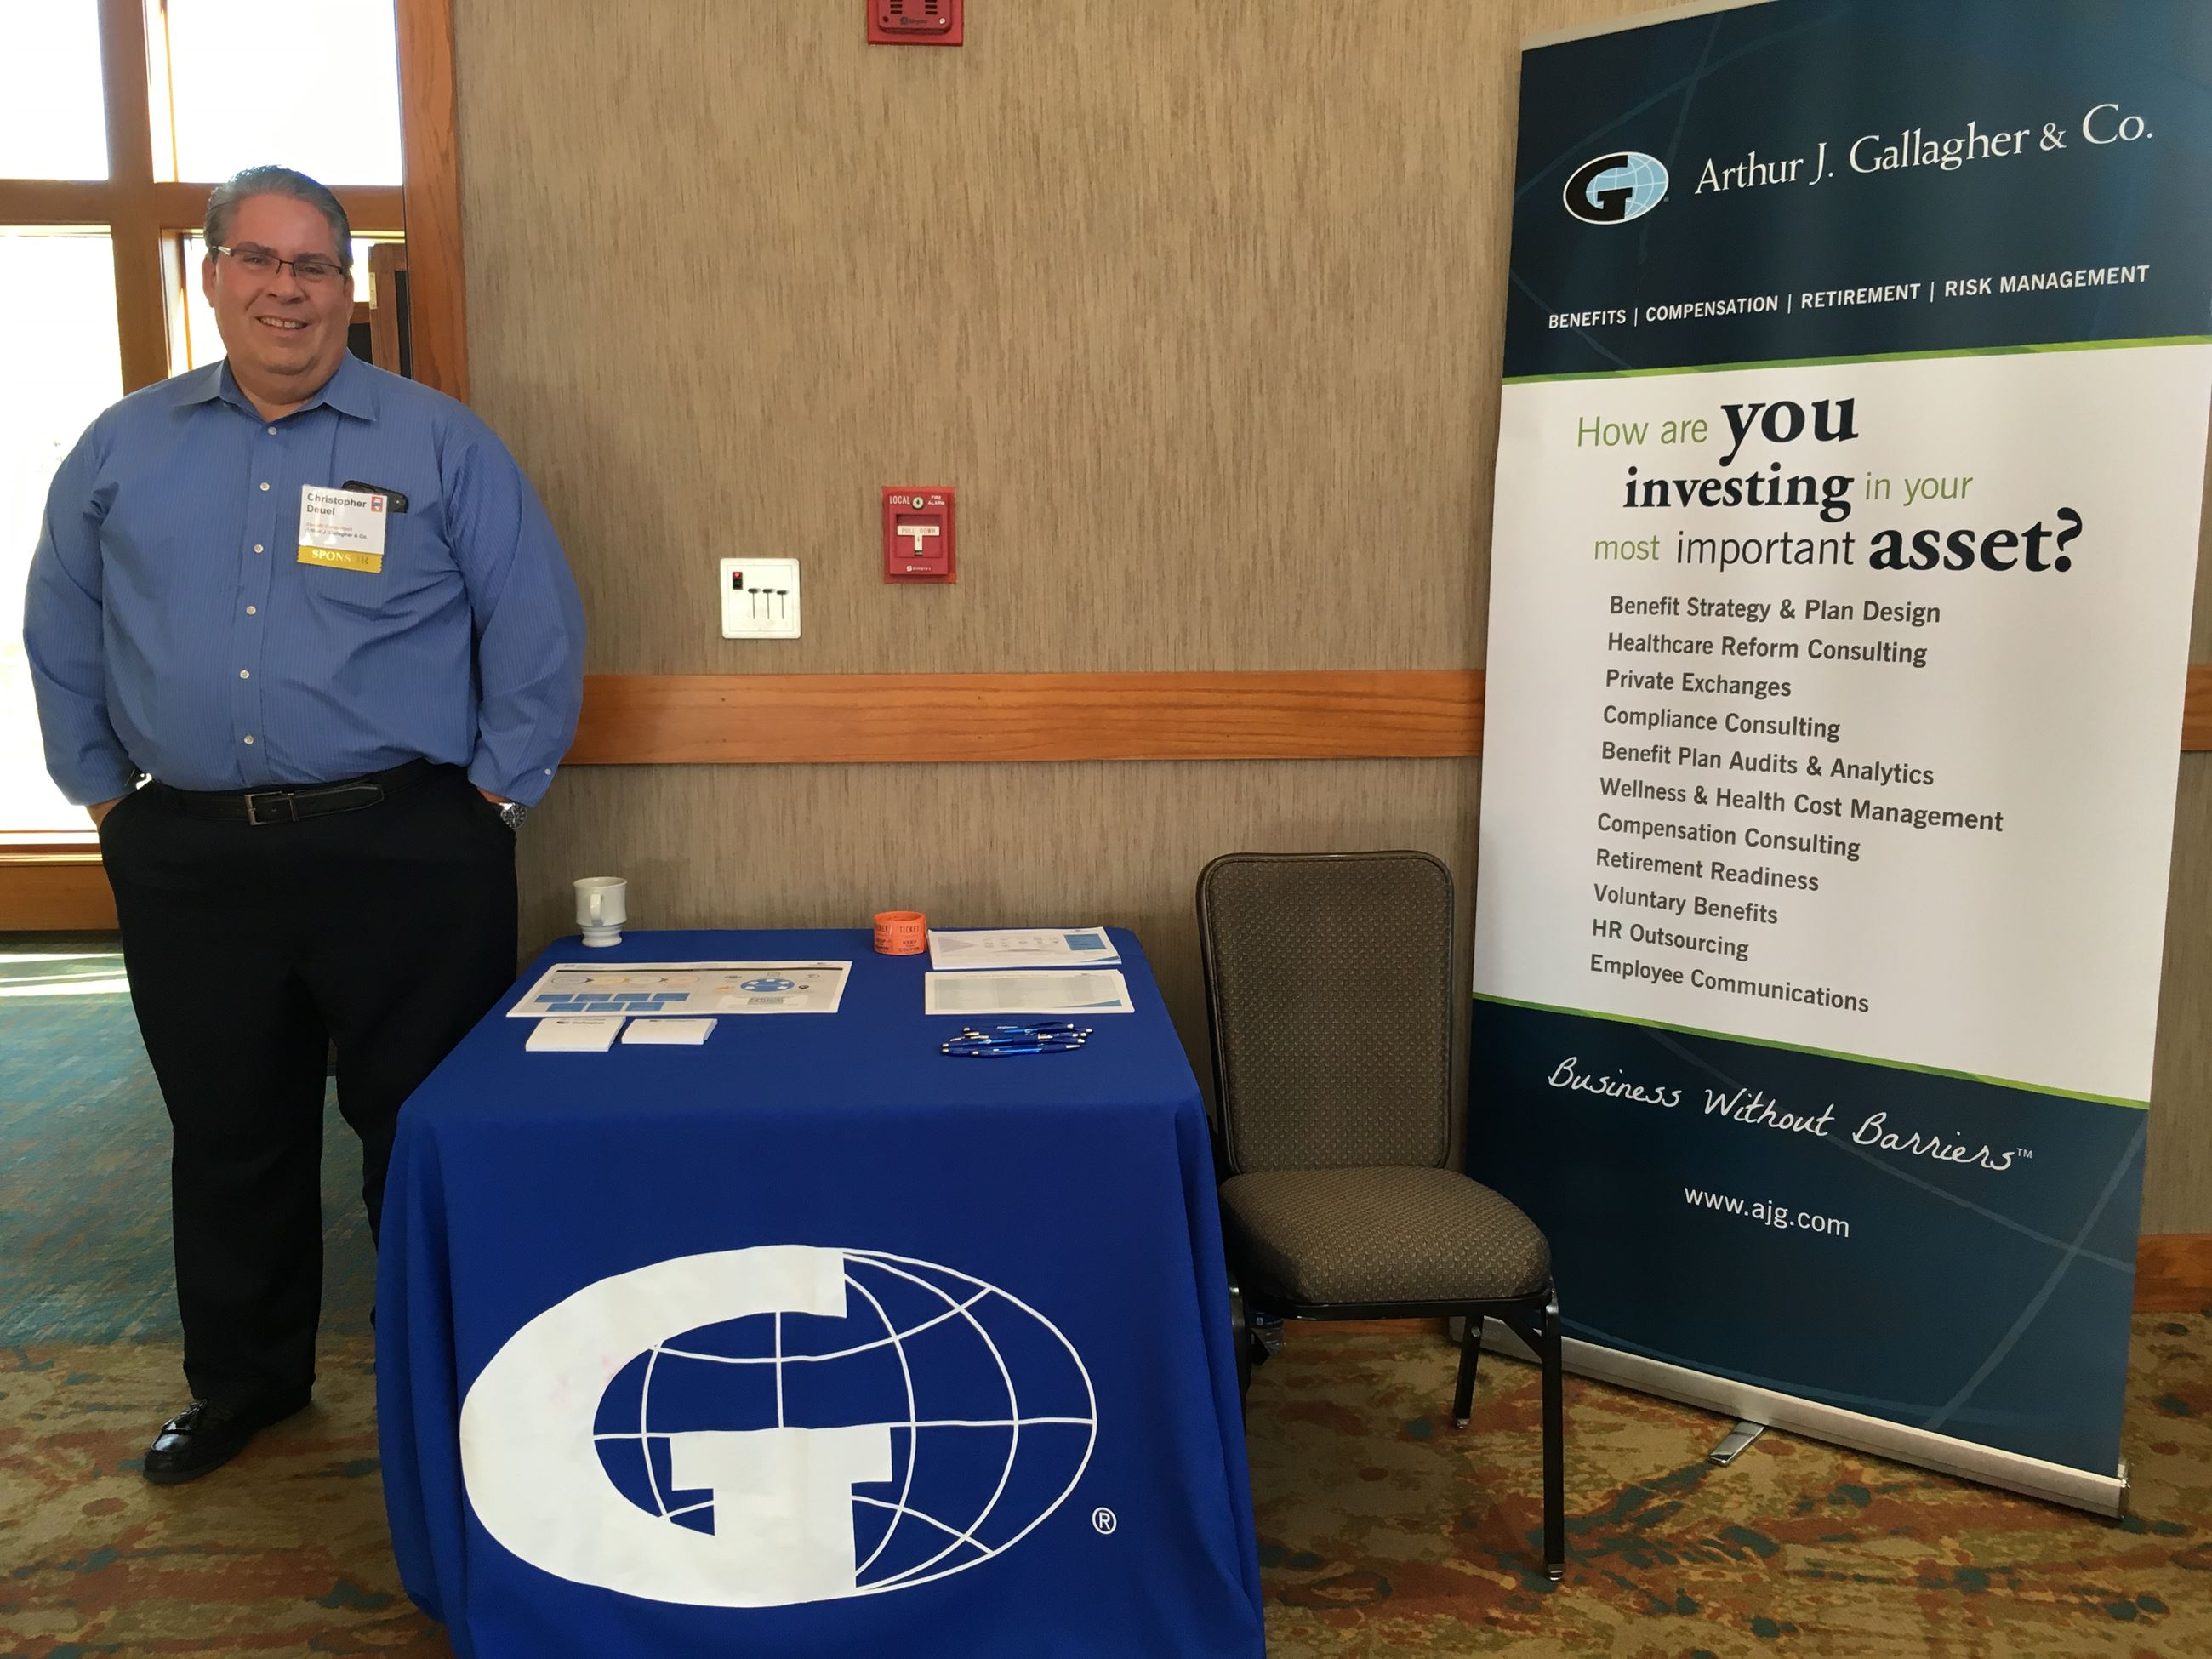 man standing next to table with Gallagher materials